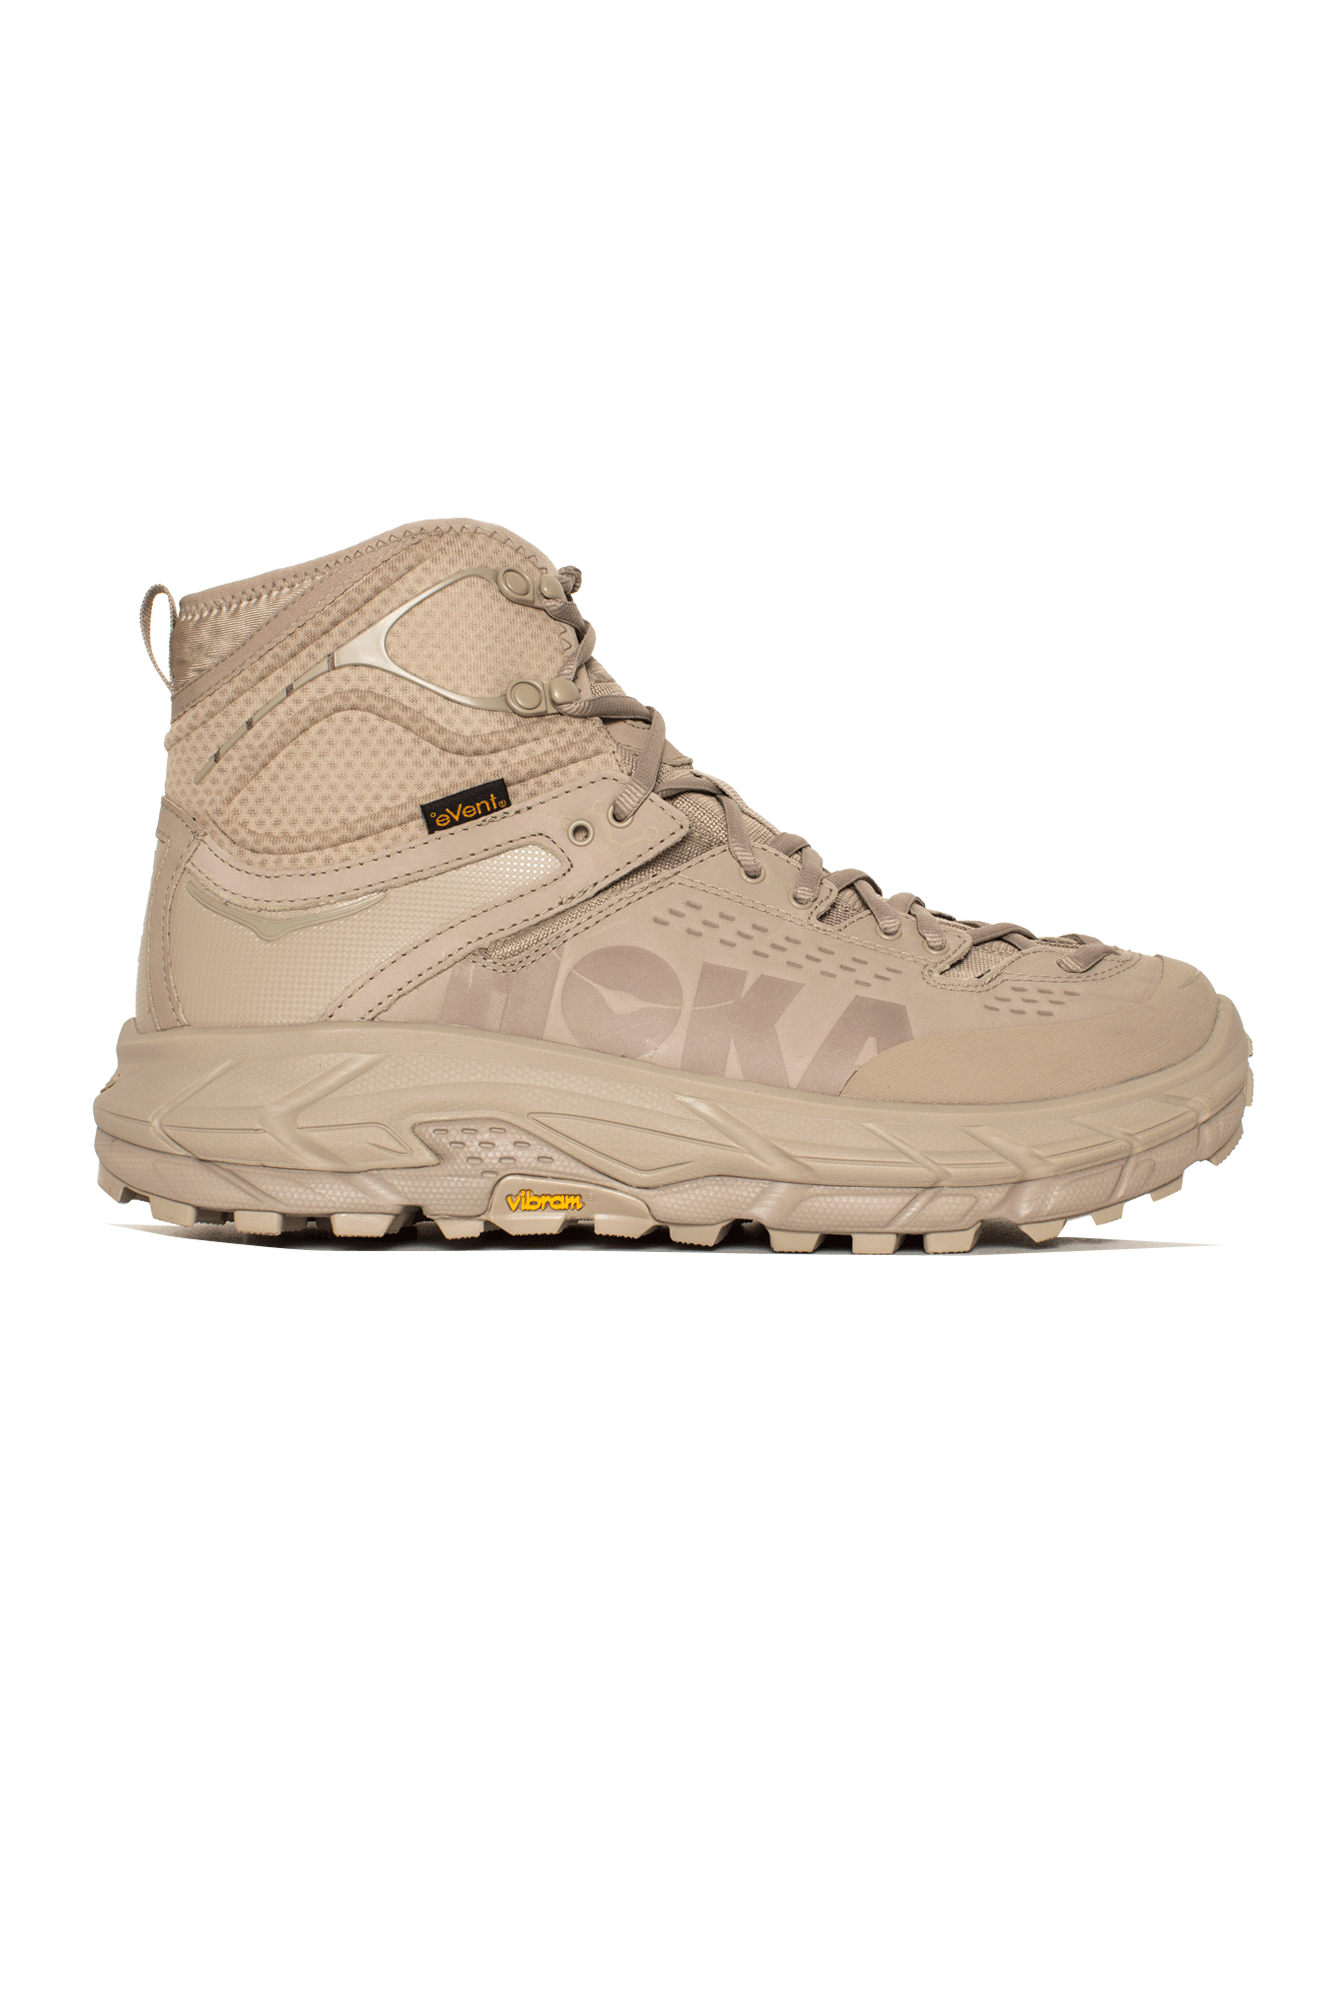 Hoka One One Sneakers Tor Ultra Hi 2 WP Carne HK.1107293#000#SITA#7 - One Block Down